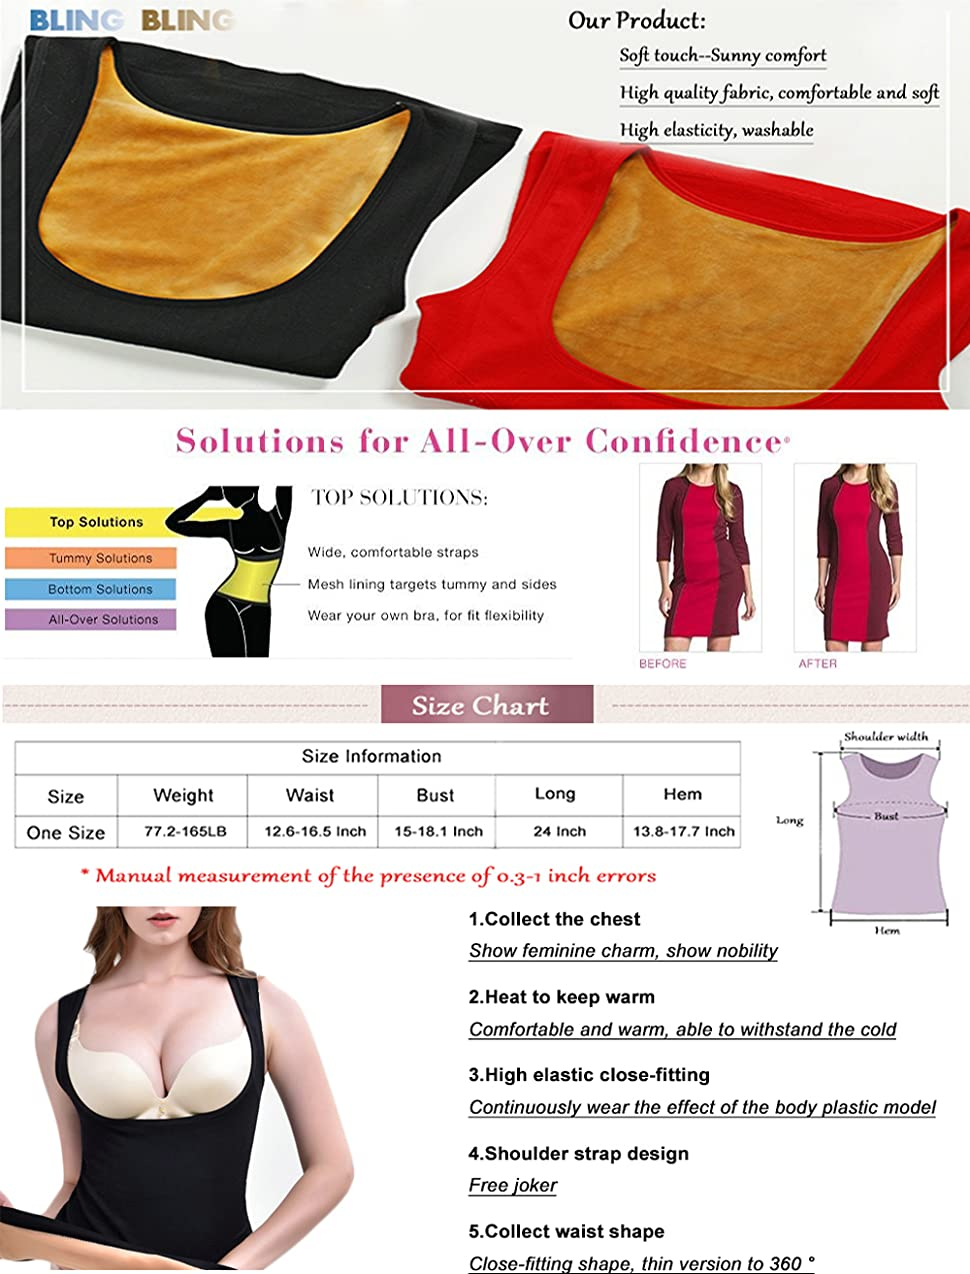 c1d4e922c495e Bling Bling Shapewear Vest Camisole Seamless Comfort Hot Sweat ...